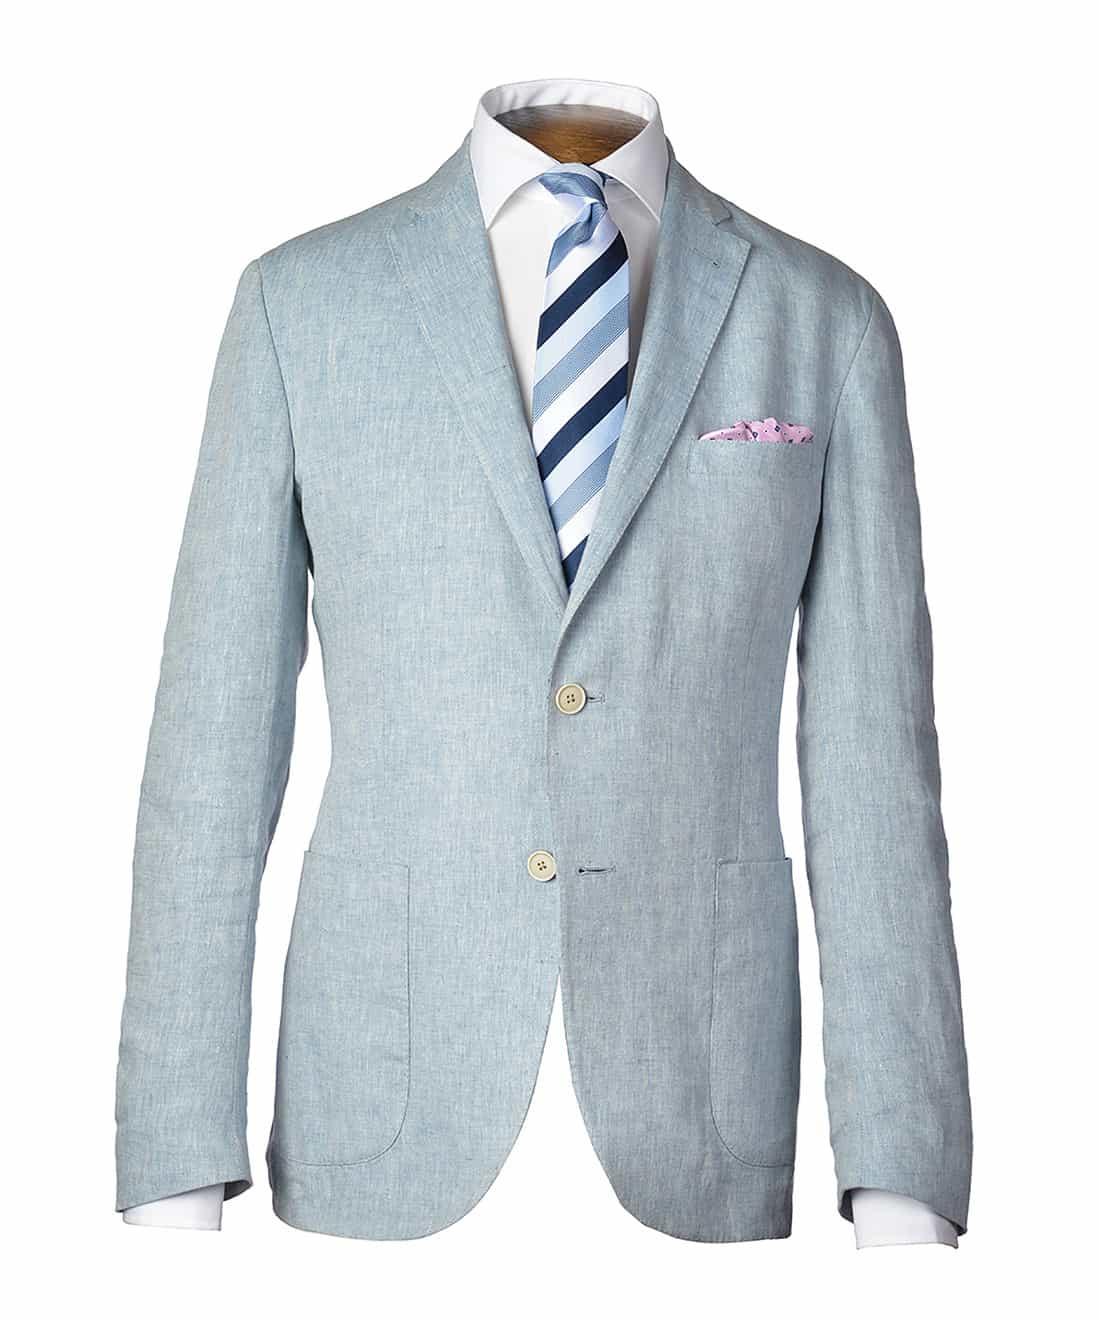 Find great deals on eBay for light blue jacket and light blue blazer. Shop with confidence.